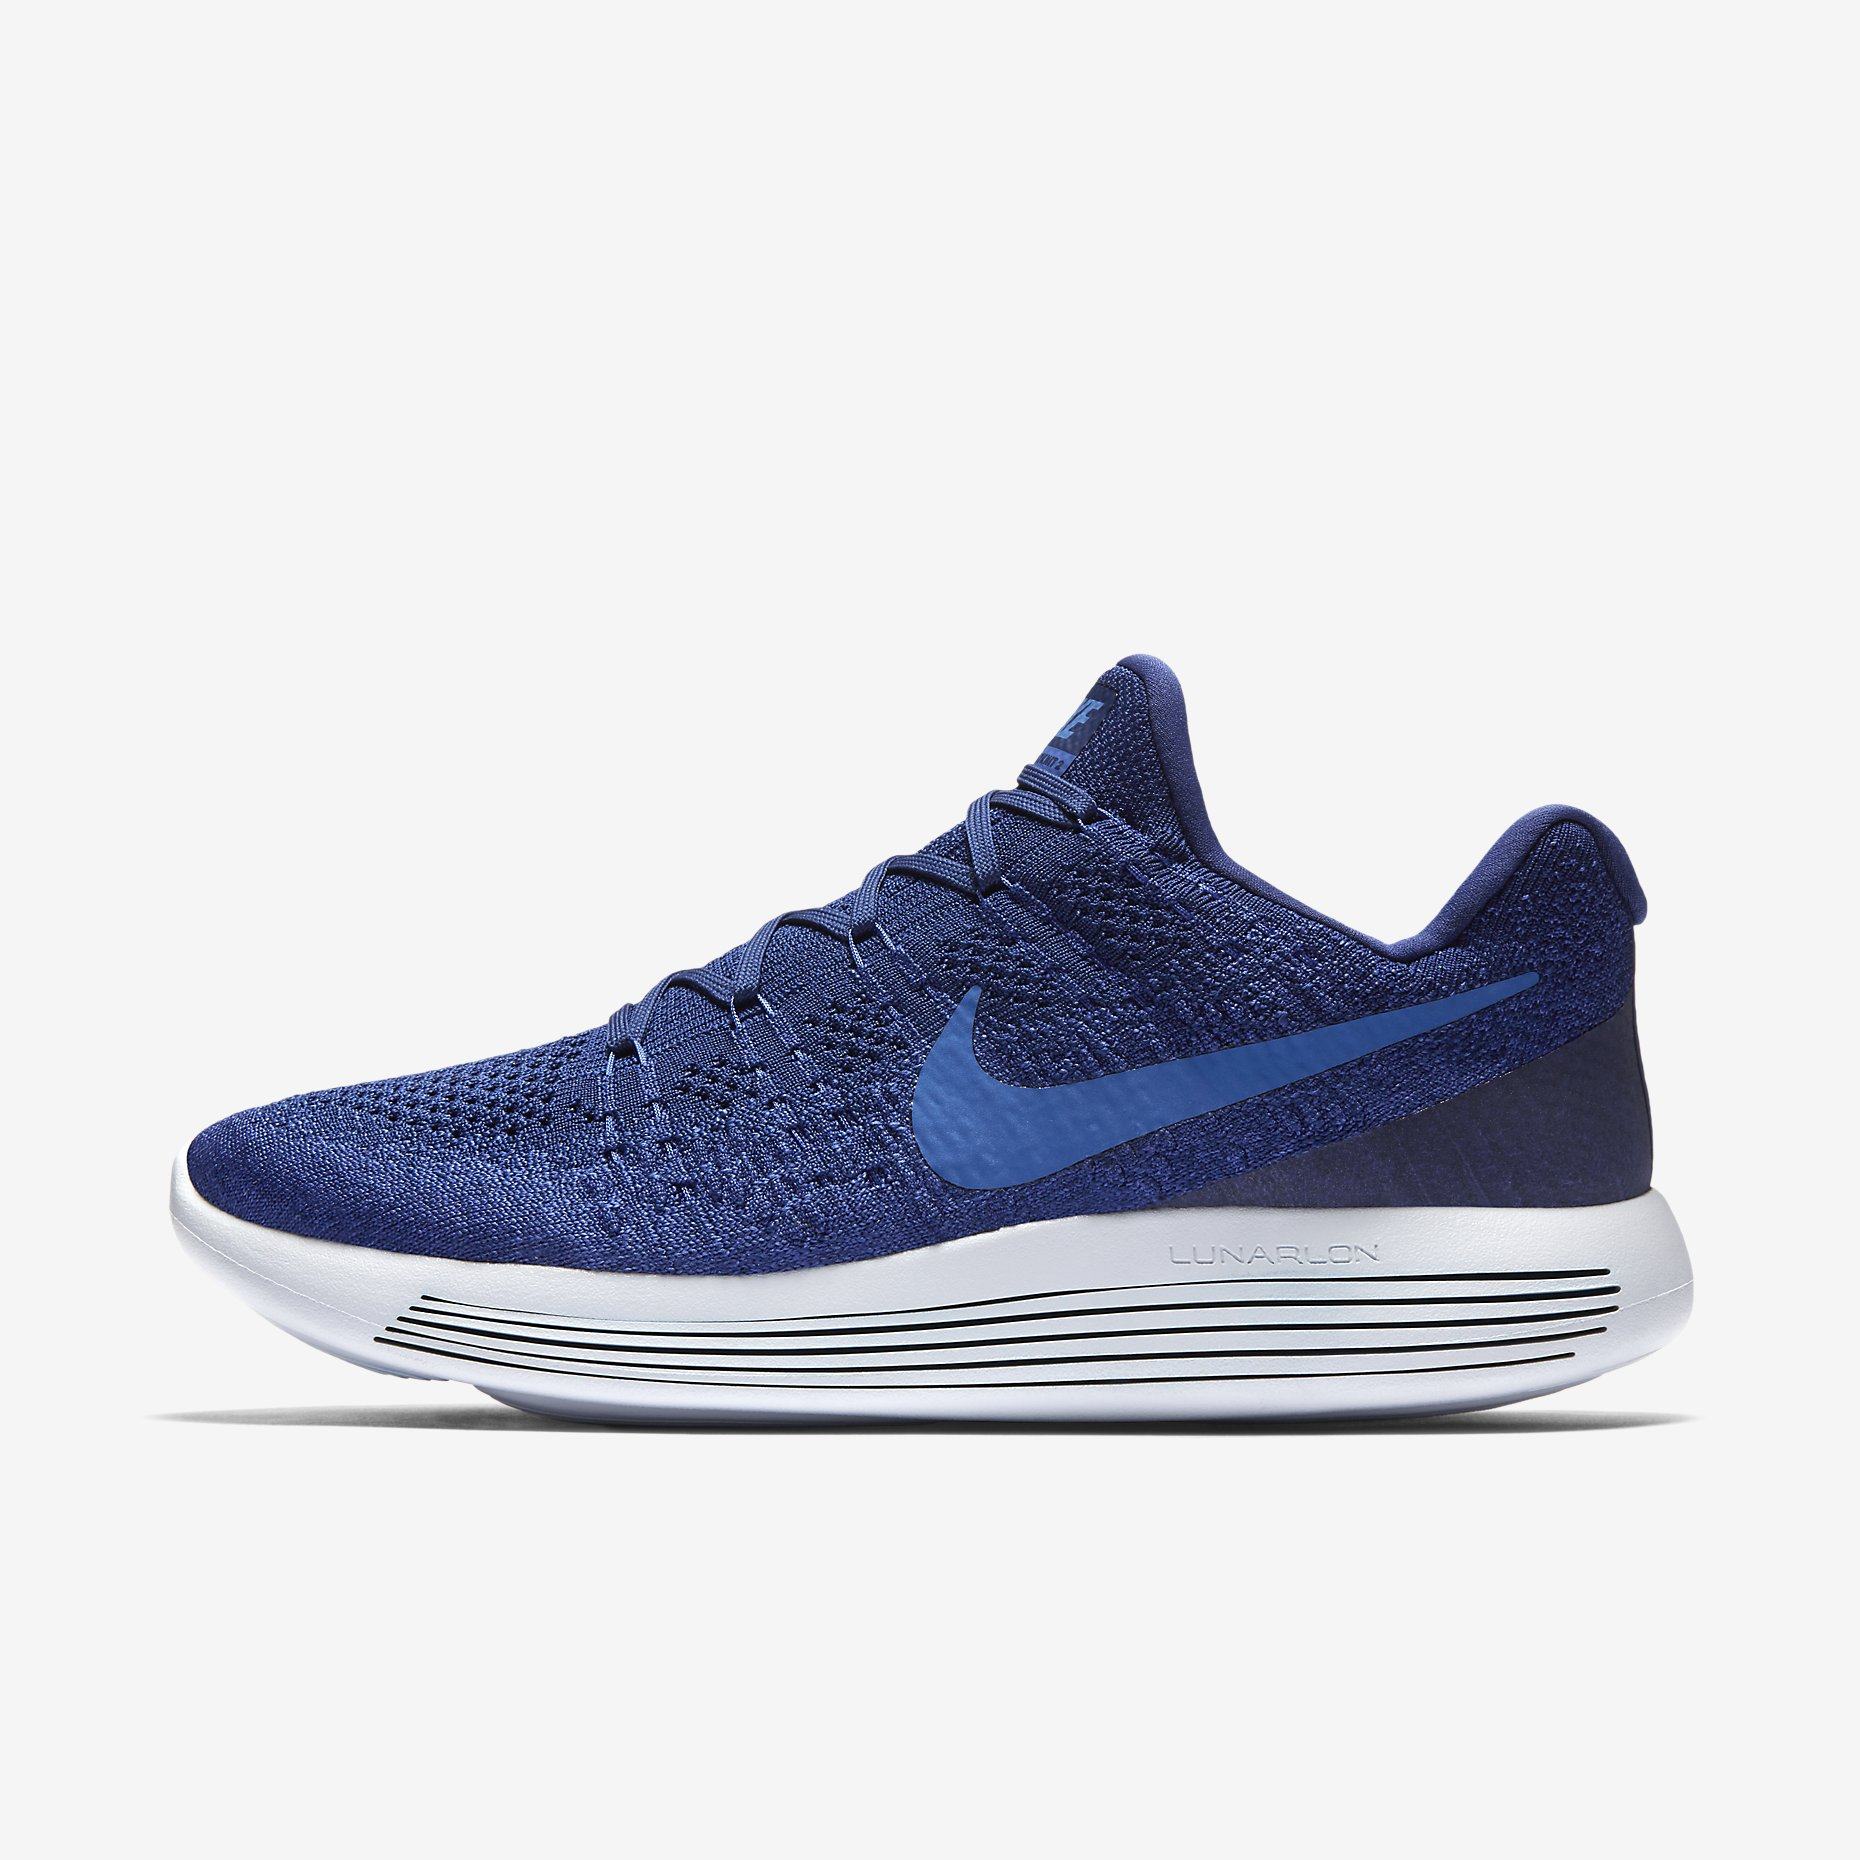 2cf9950d5b6 Nike LunarEpic Low FlyKnit 2 Mens Running Shoes - Alton Sports